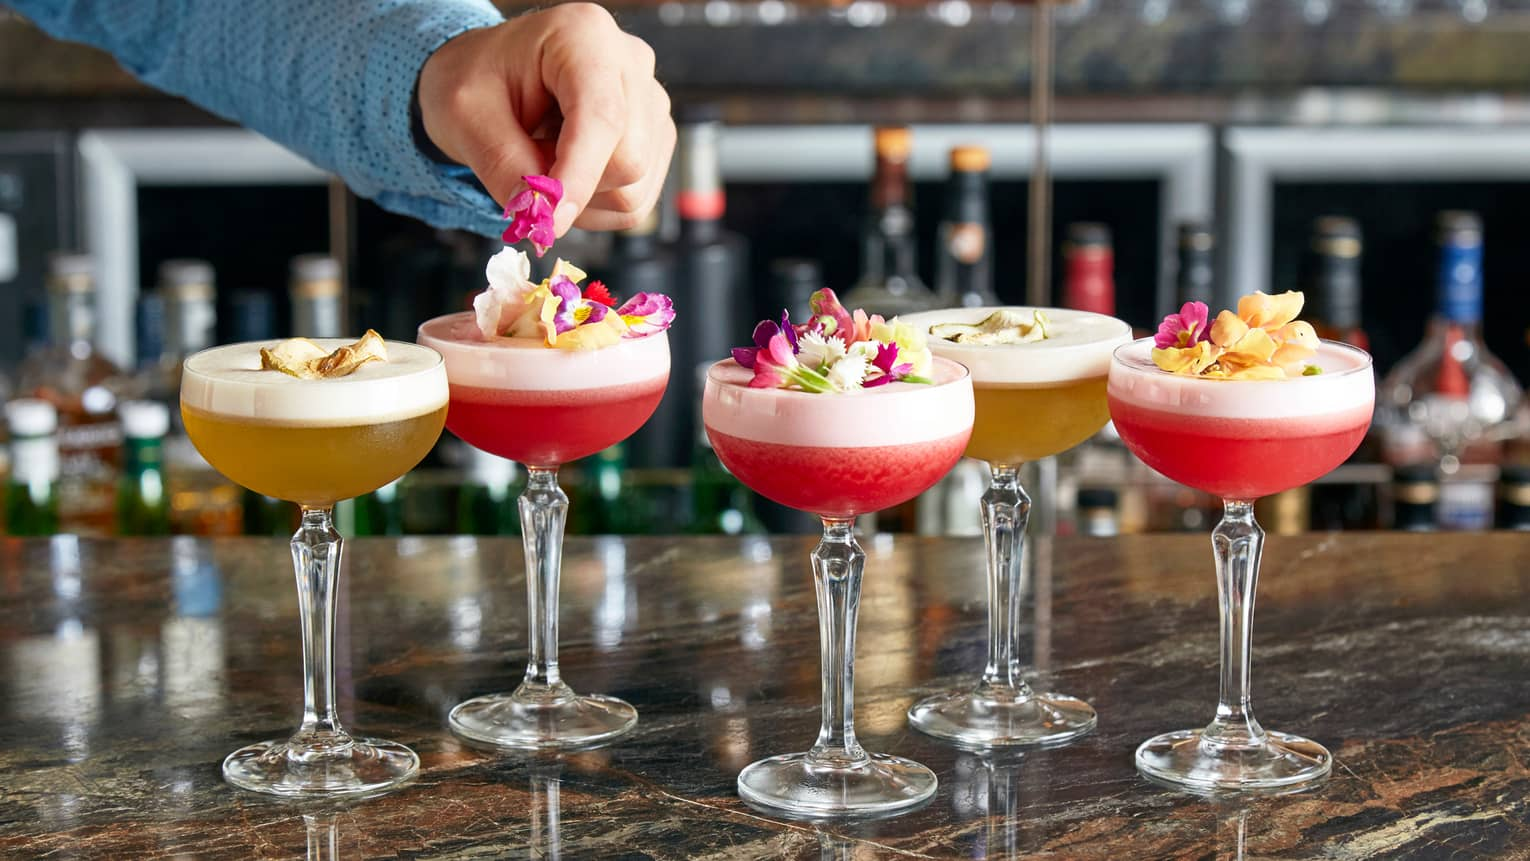 Grain bar mixologist garnishes colourful frozen cocktails with fresh flower petals